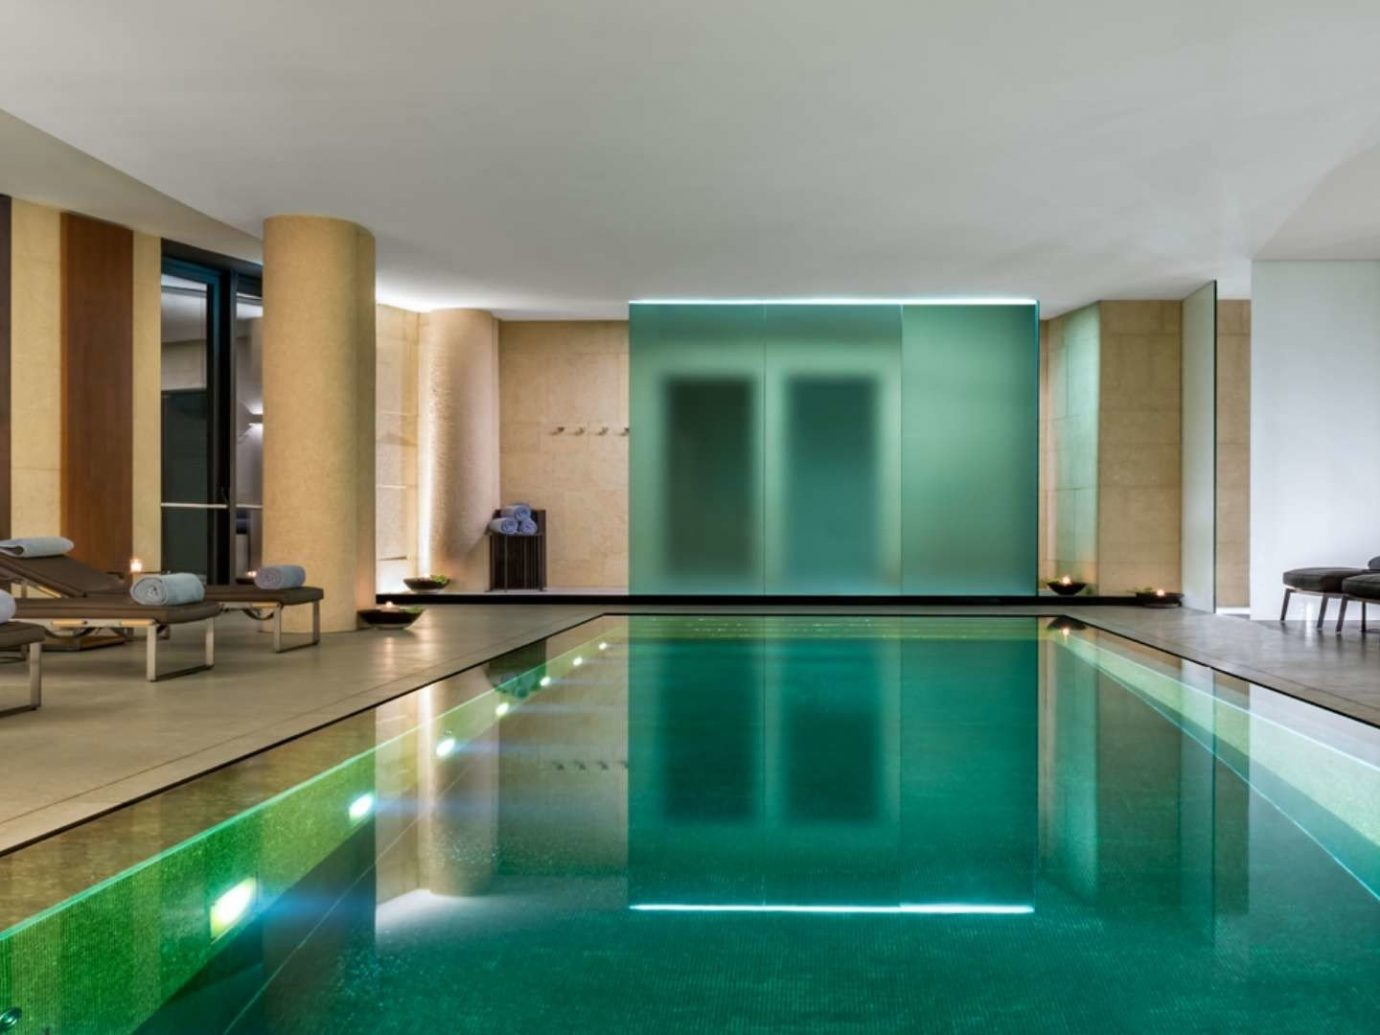 Hotels Italy Milan property swimming pool interior design real estate estate apartment condominium leisure centre hotel leisure floor Resort amenity penthouse apartment